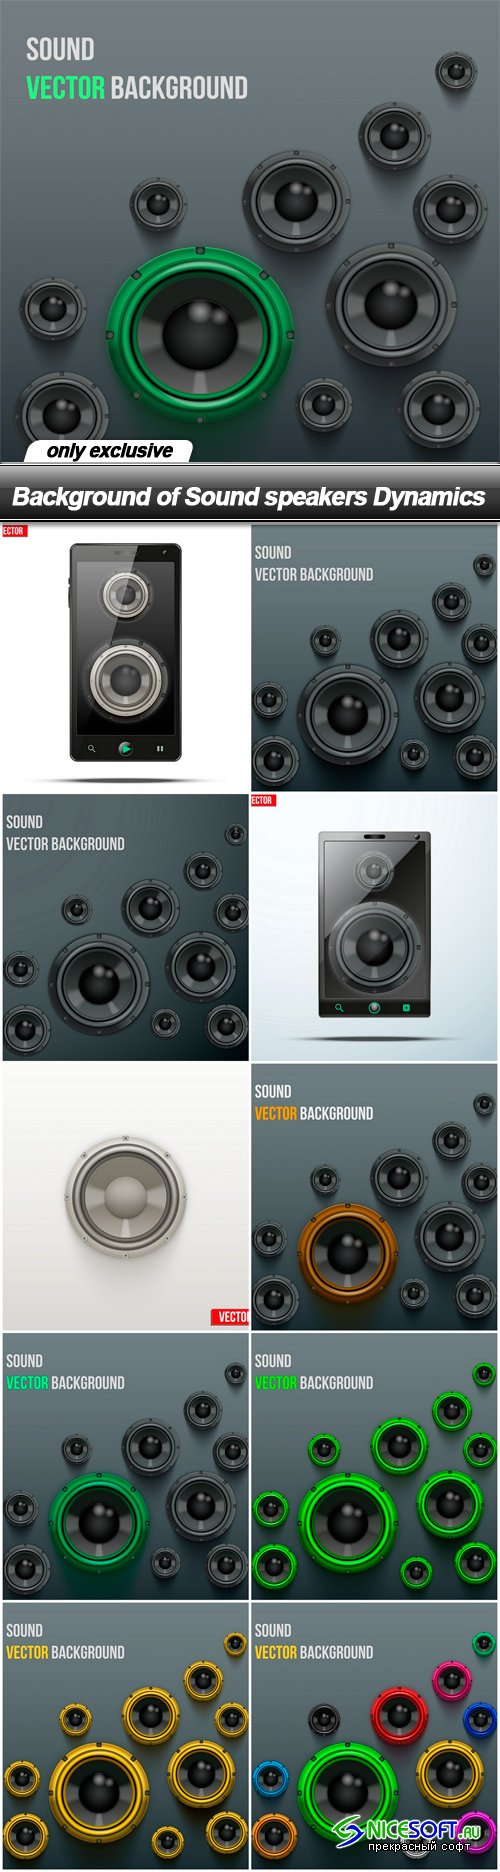 Background of Sound speakers Dynamics